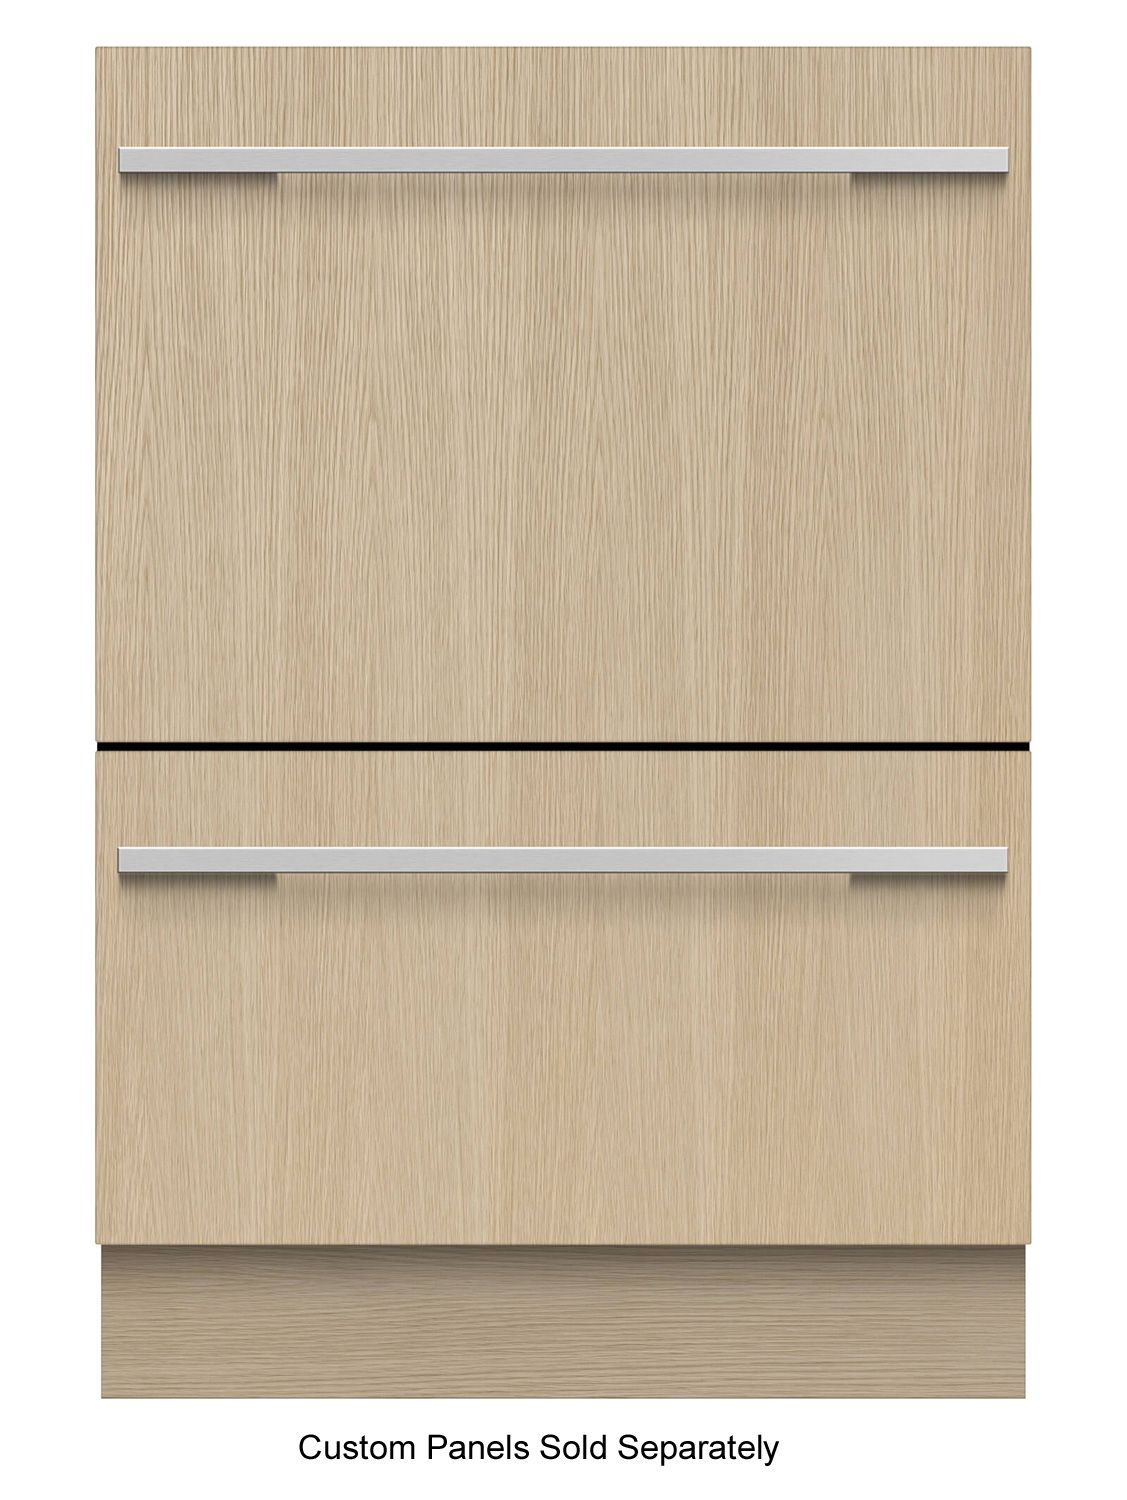 uncategorized two drawers drawer surplus u paykel designer home dishdrawers style at dishwasher and fisher fascinating with of xf on inspiration